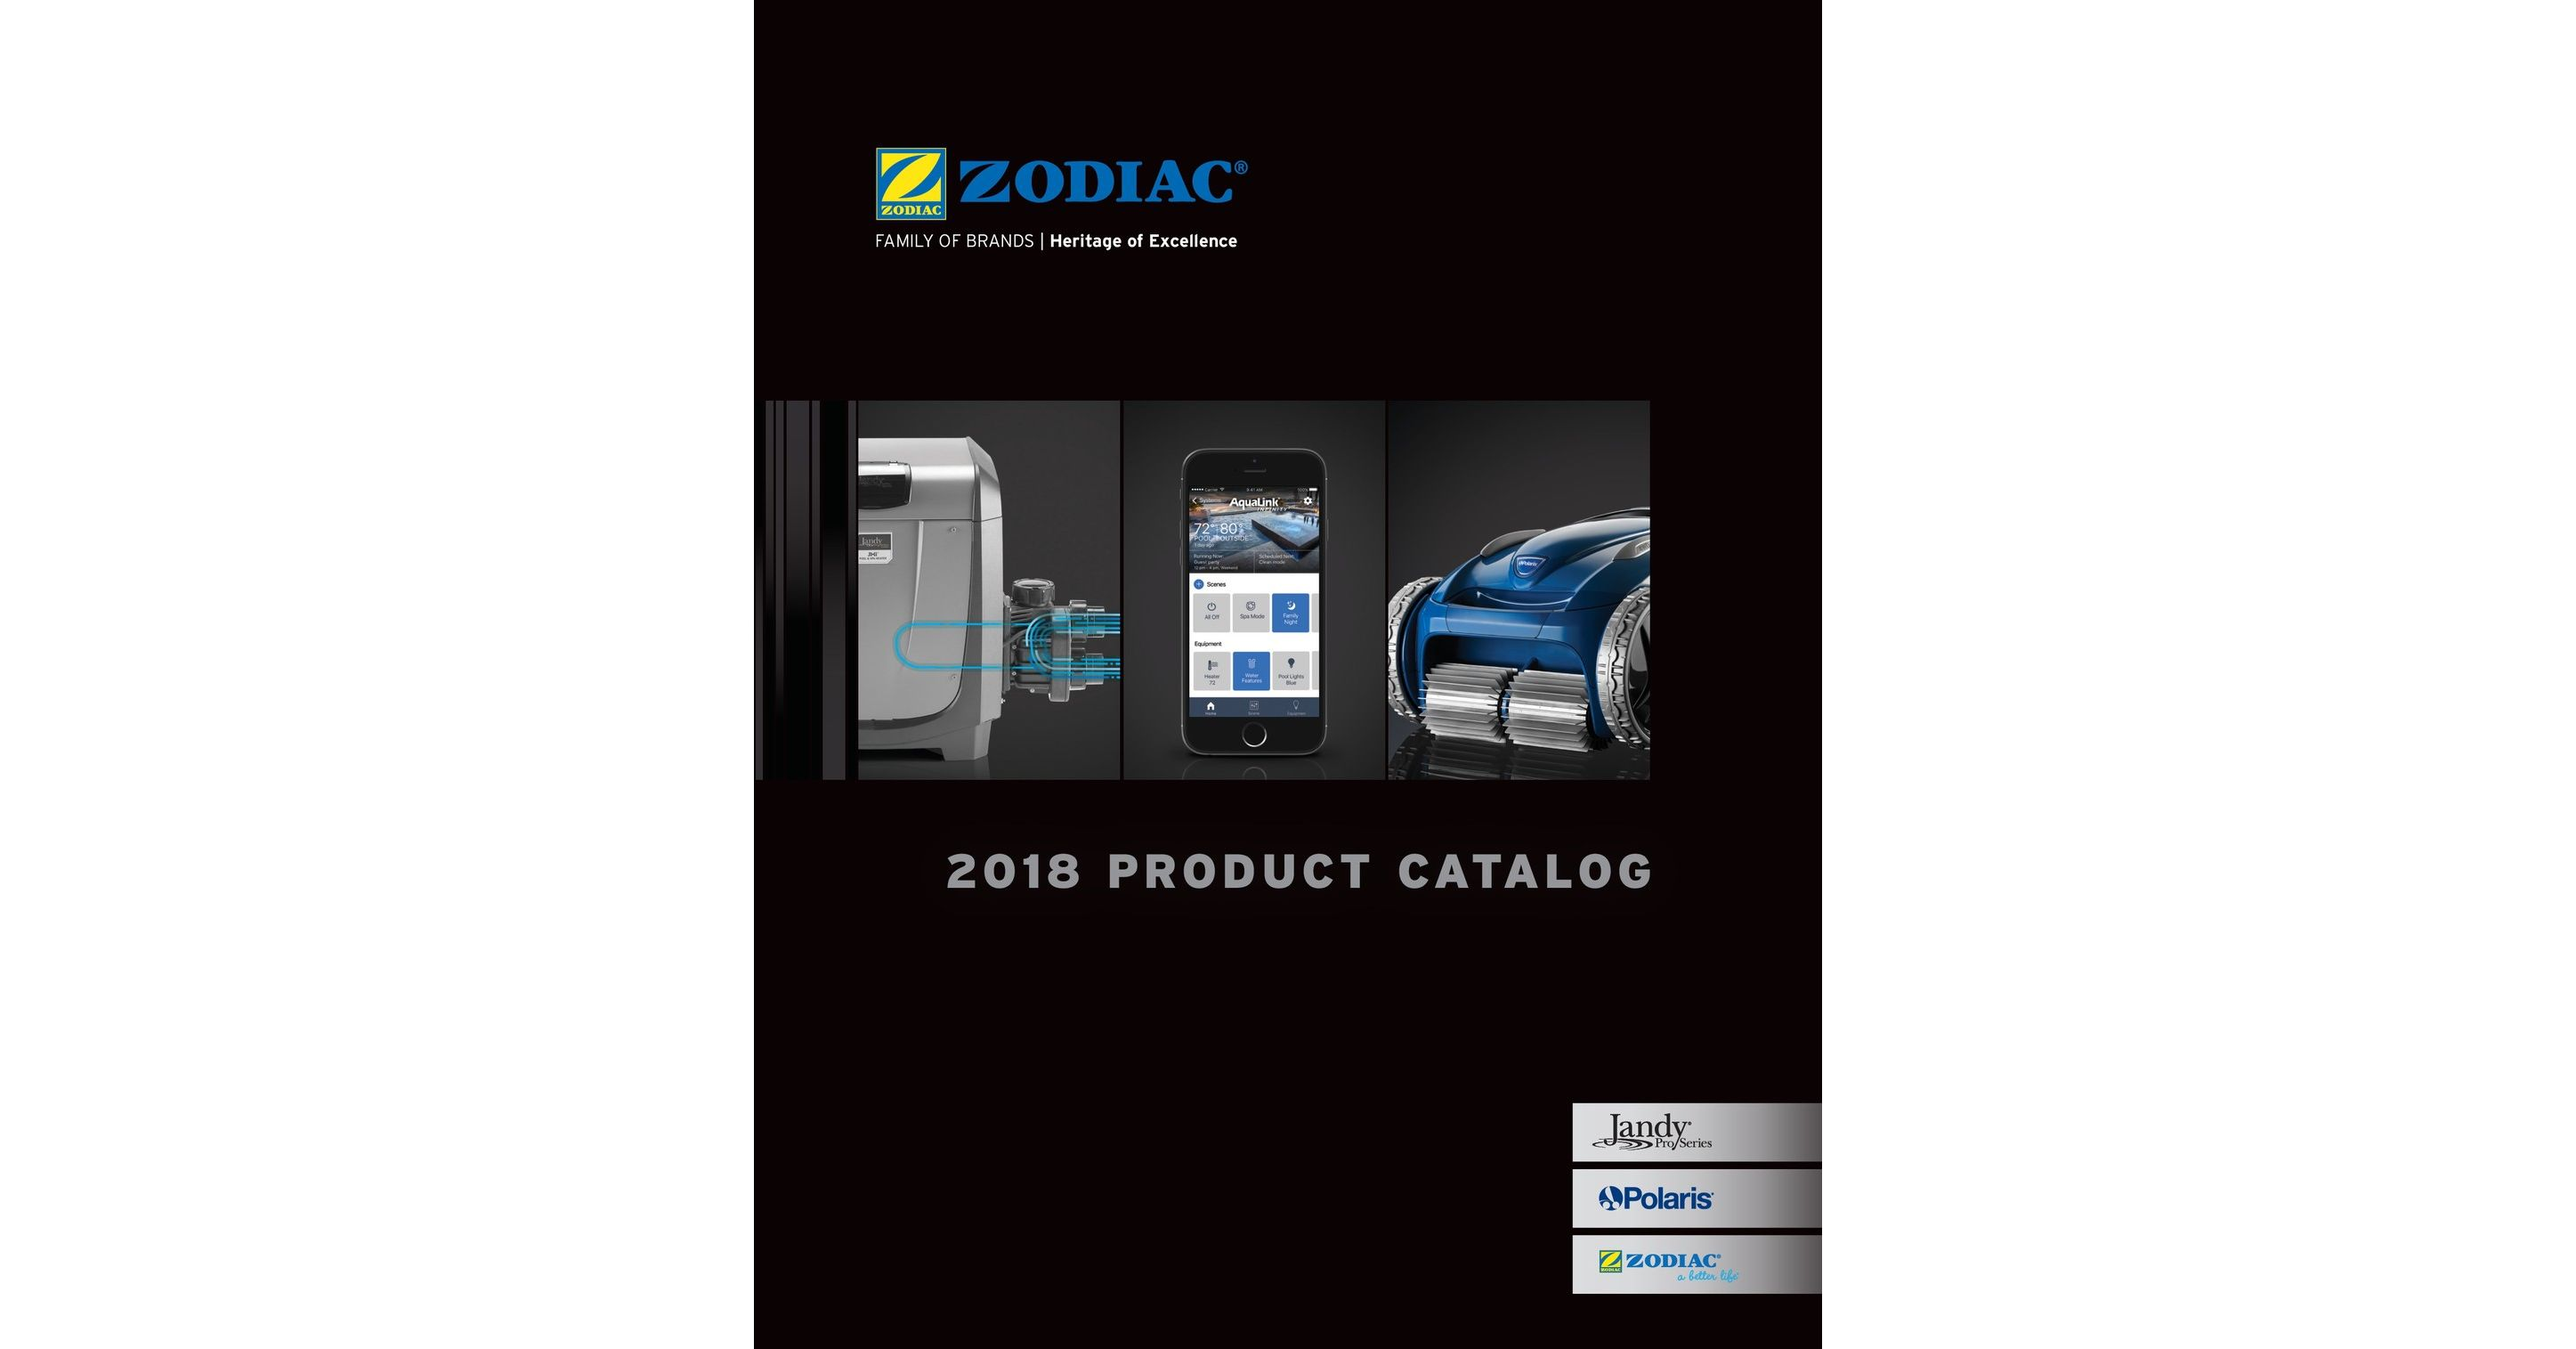 2018 Zodiac Catalog Web No Price Version Printed Circuit Board Replacement Kit For Aqualink Pool